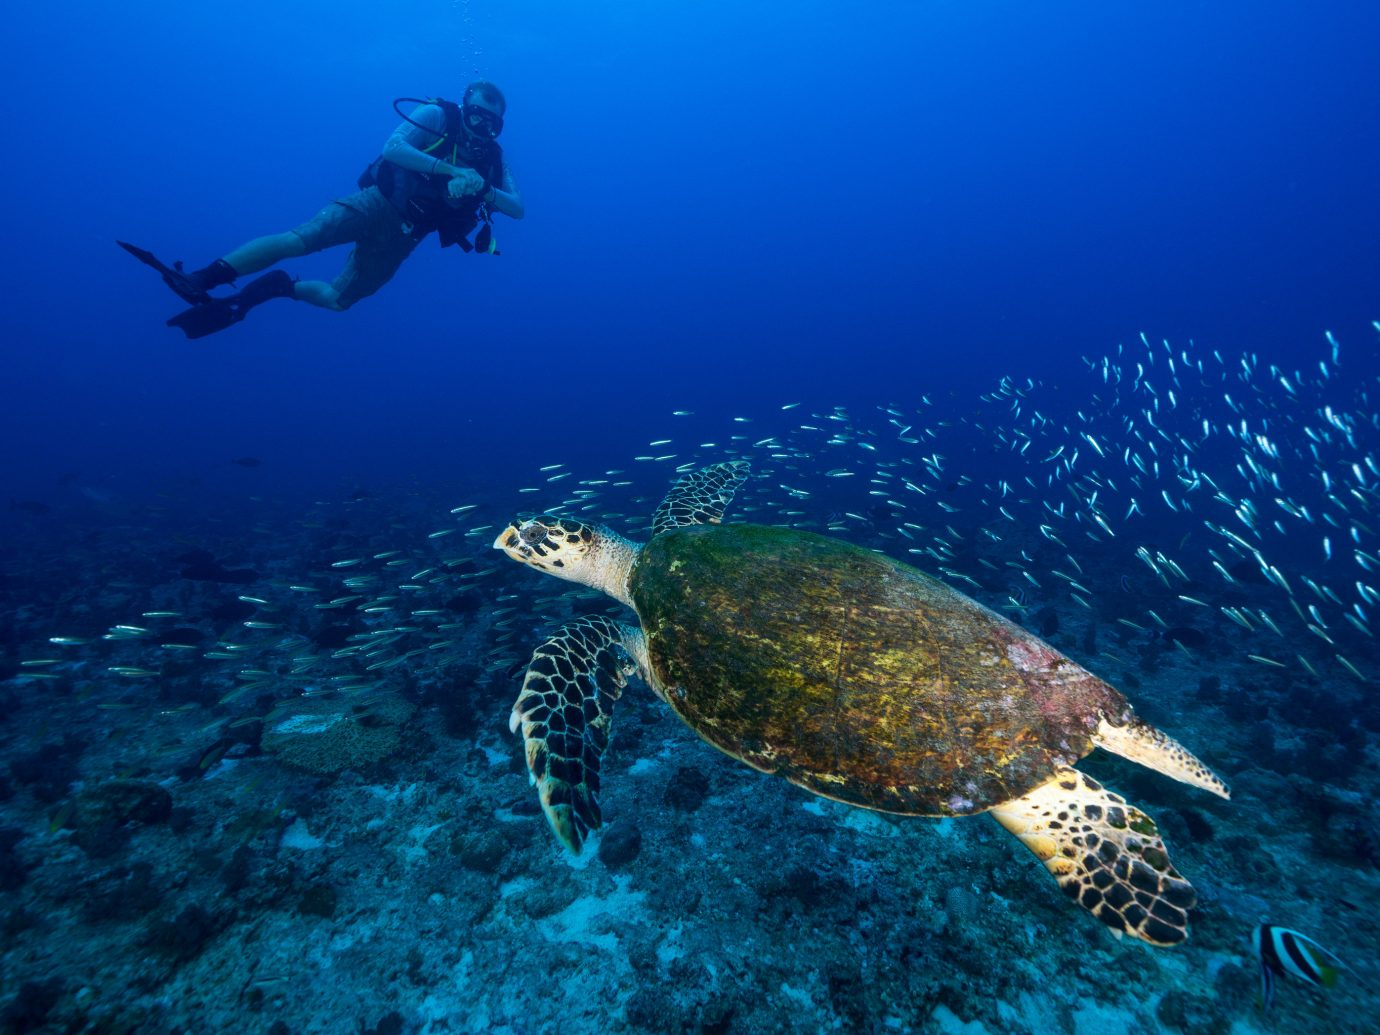 Luxury Travel Trip Ideas reptile sea turtle loggerhead marine biology turtle ecosystem underwater water animal Sea organism coral reef reef divemaster underwater diving Scuba Diving coral aquanaut Ocean tortoise blue ocean floor